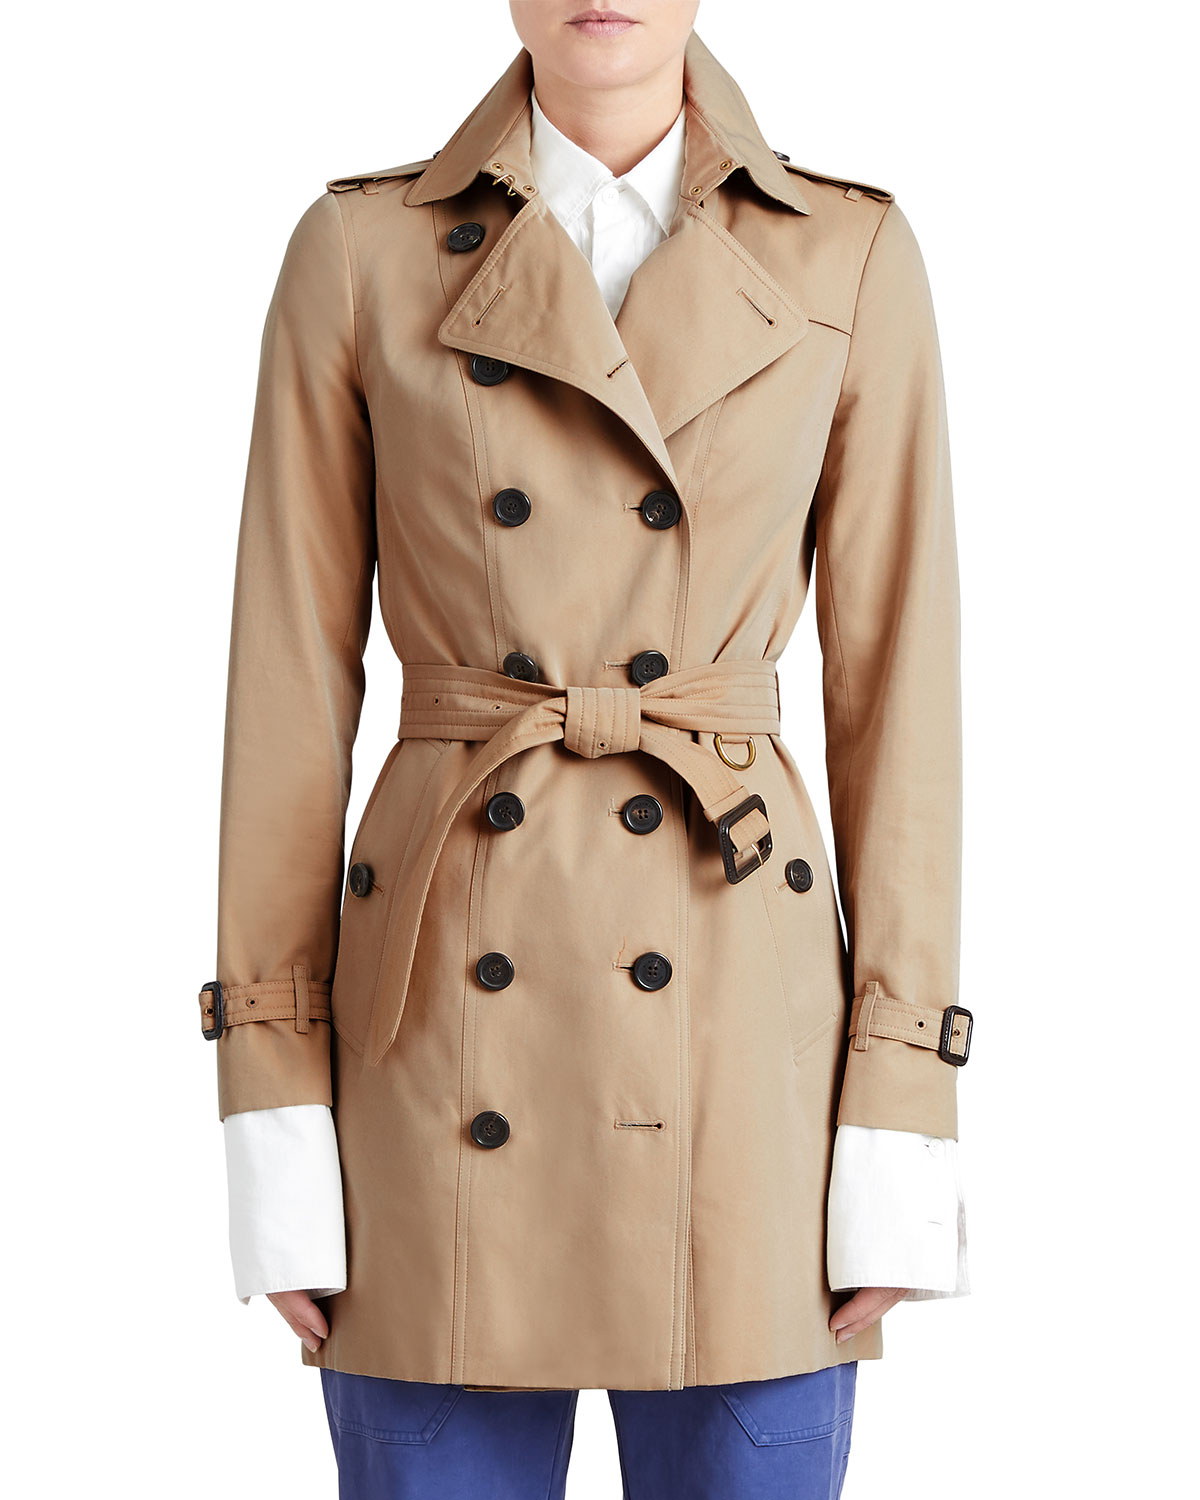 727726a66385 Quick Look. Burberry · The Sandringham - Mid-Length Slim Fit Heritage Trench  Coat